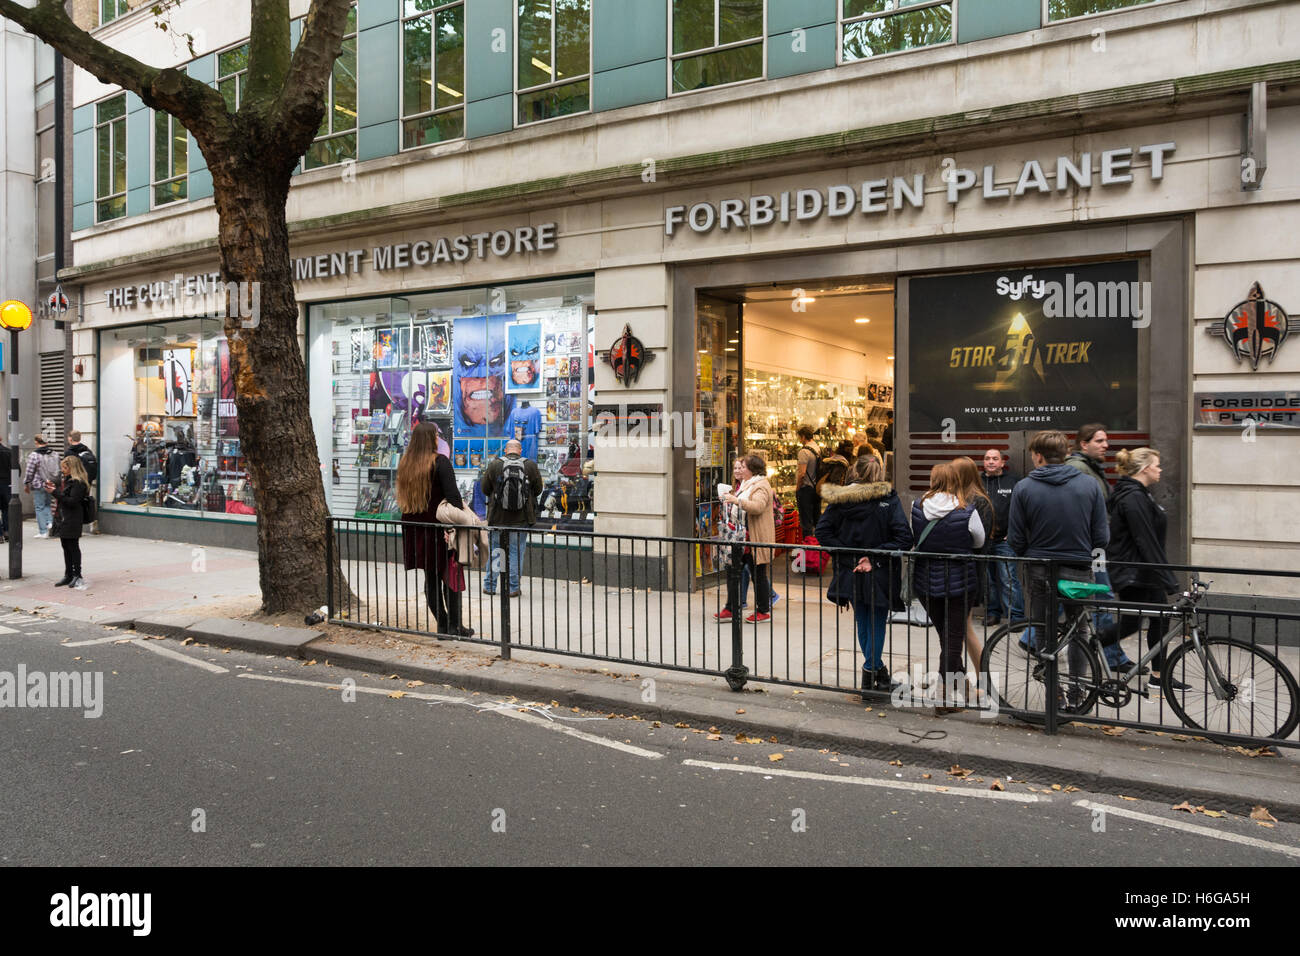 The Forbidden Planet megastore on Shaftesbury Avenue, London